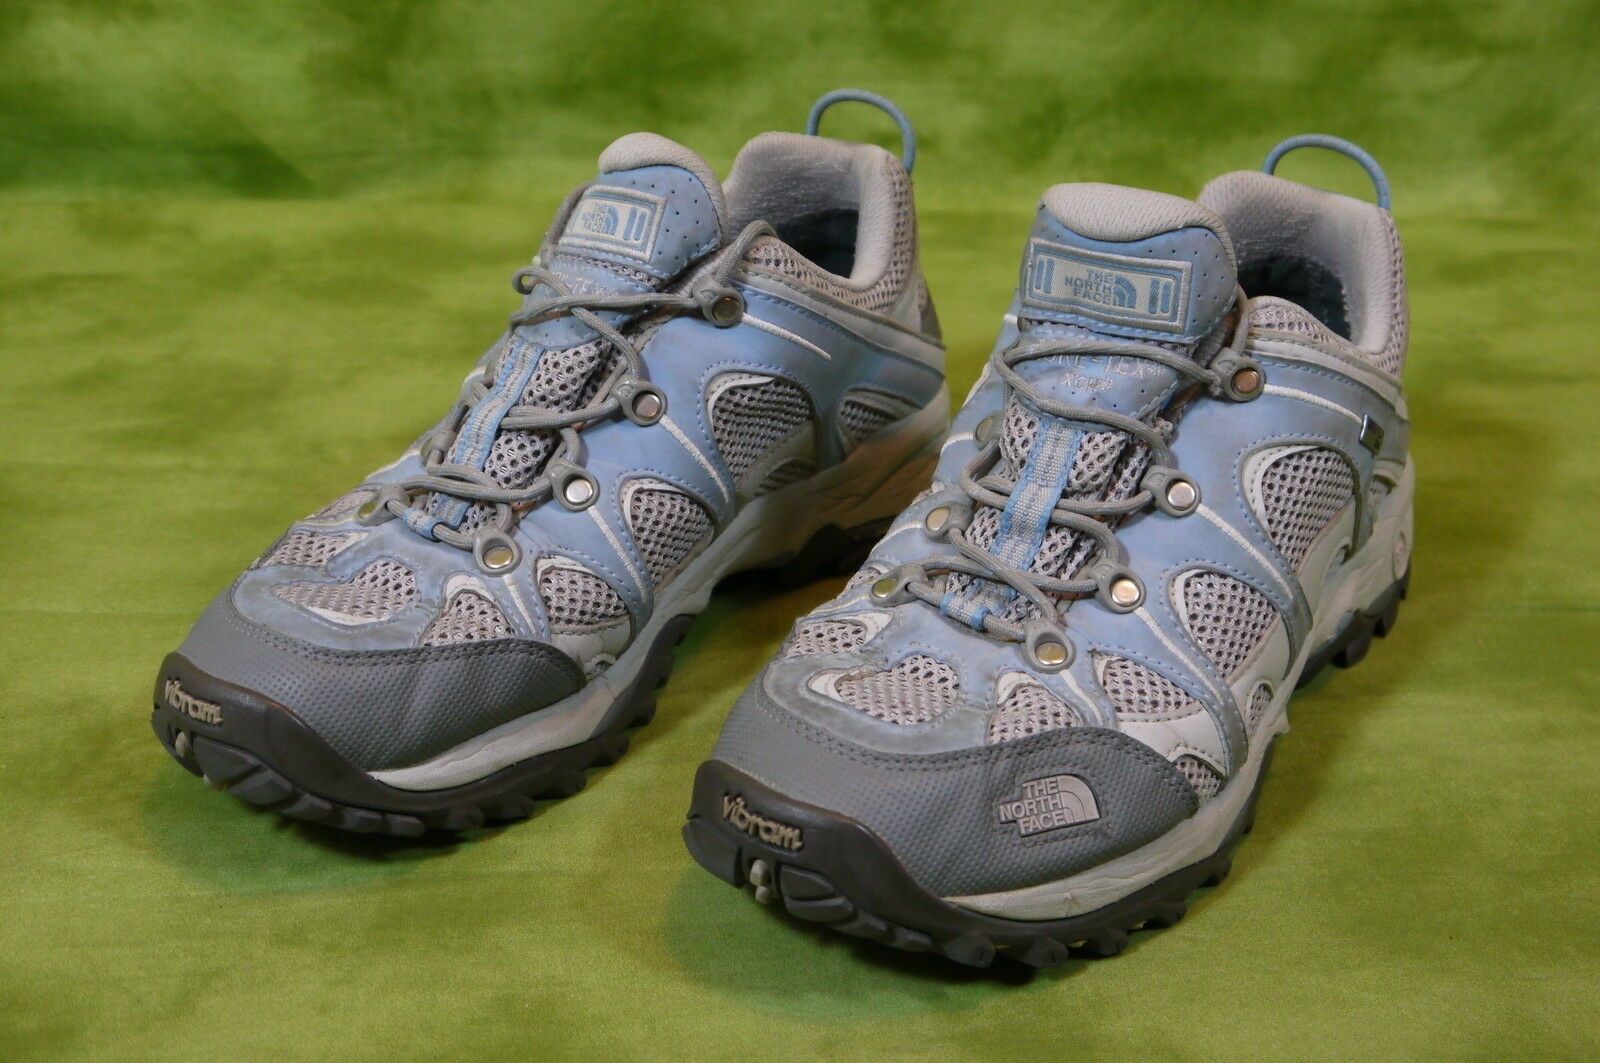 The North Face Shoes Gore - Tex XCR Women's 8.5 Hiking Trail Camping